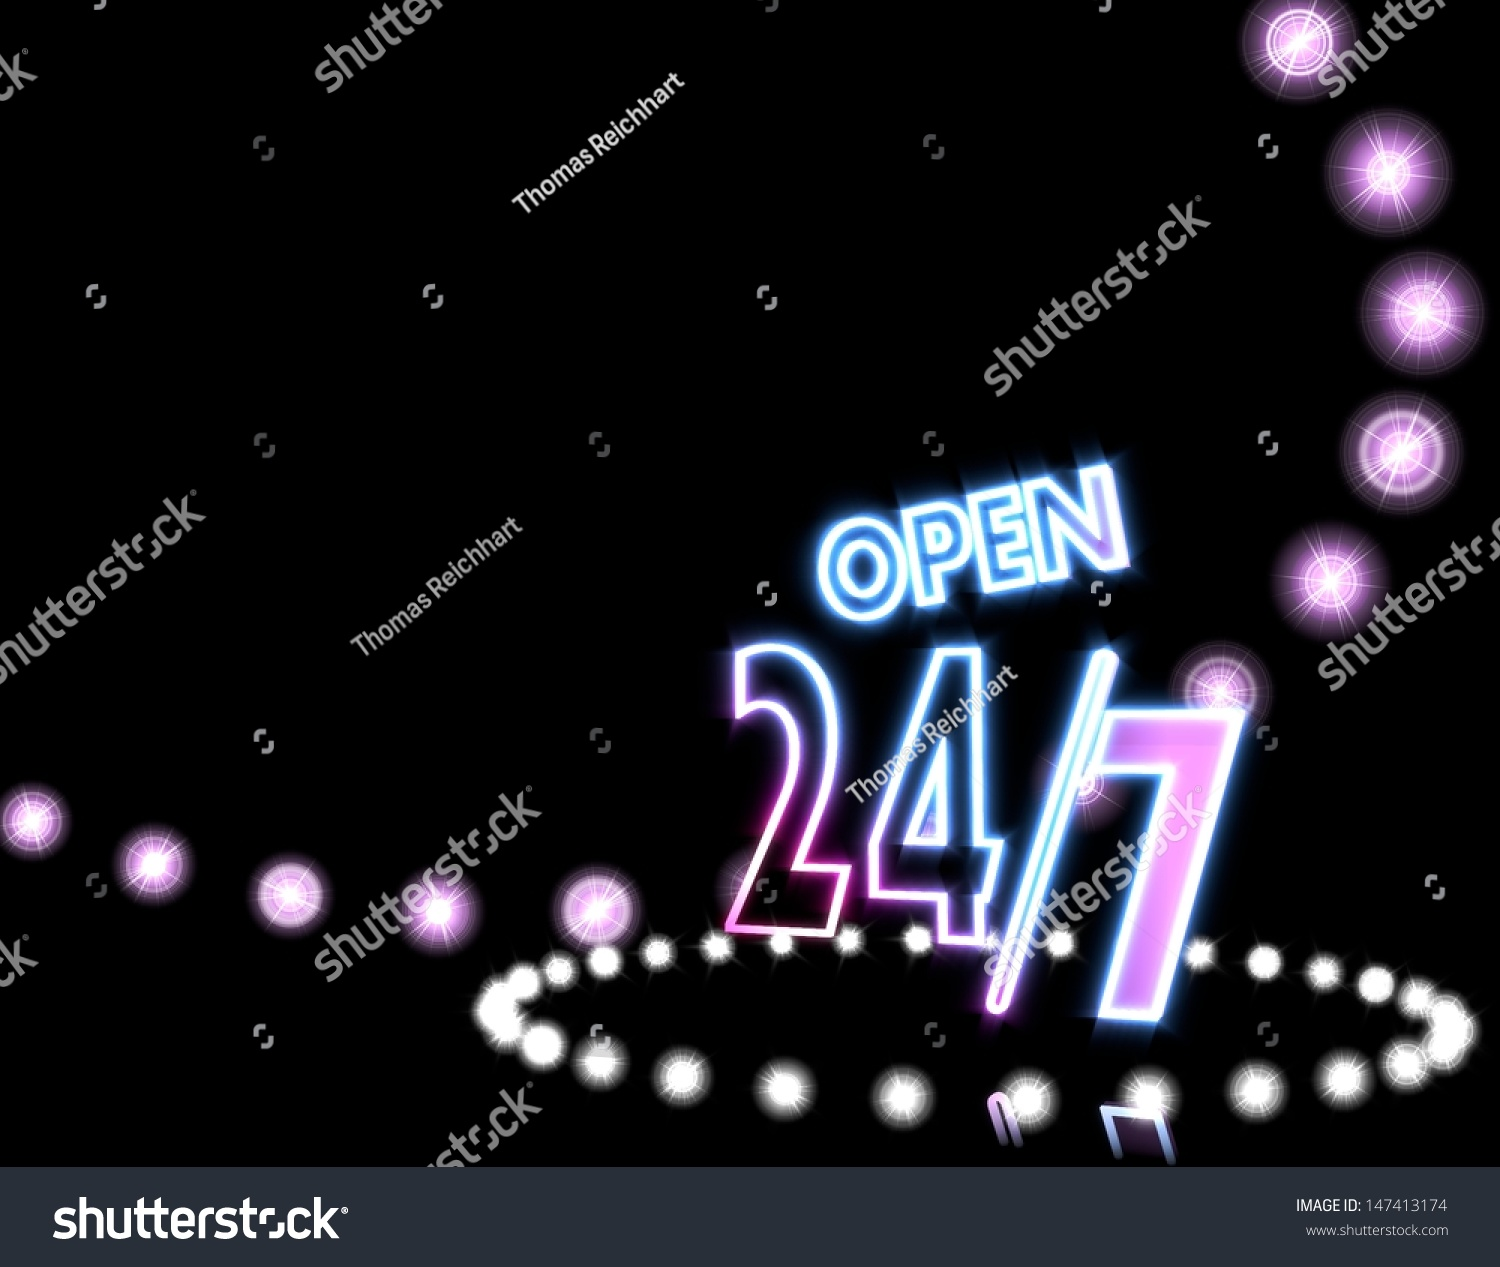 Cool Black Neon Disco 3d Graphic With Glowing Open Sign On